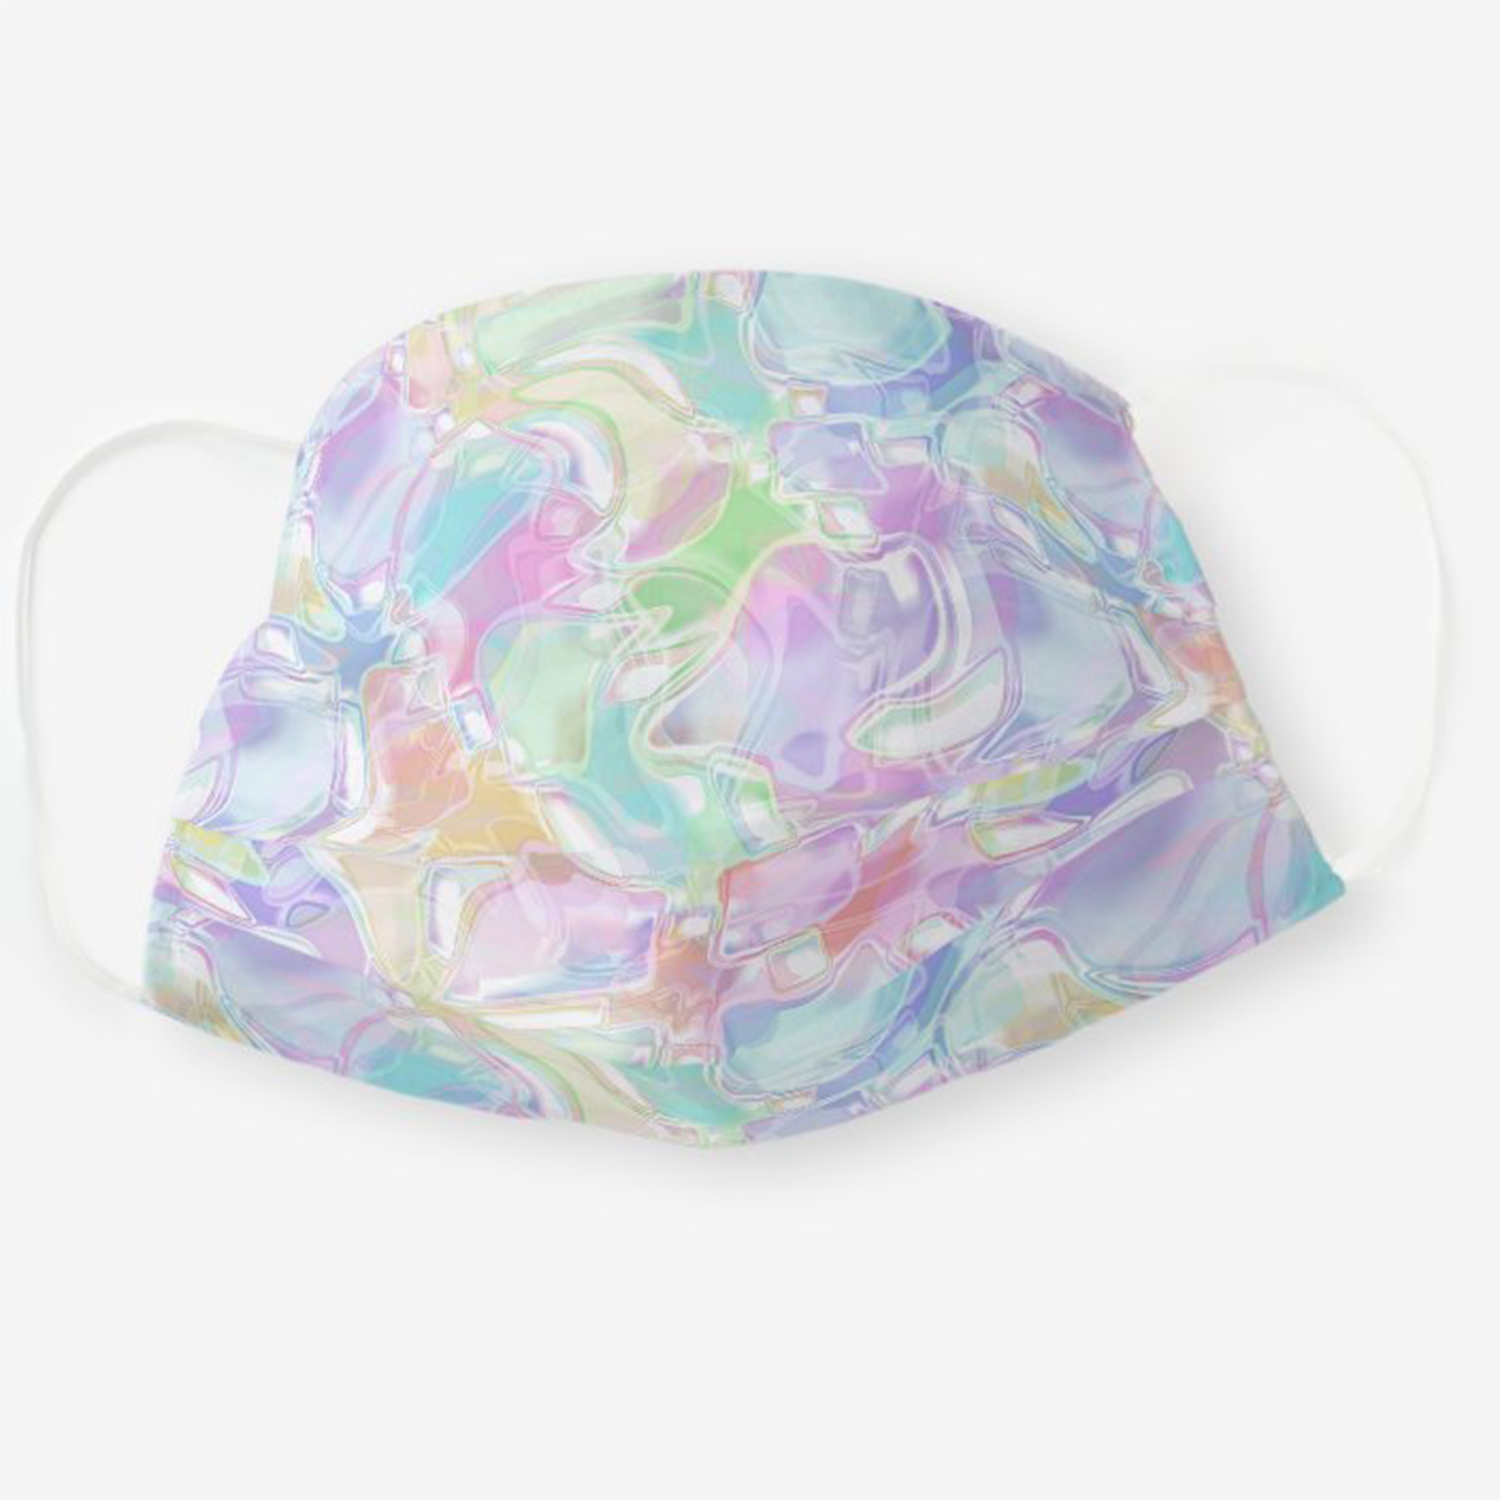 Zazzle Hip Pastel Pink Violet Blue Green Turquoise Swirls Cloth Face Mask